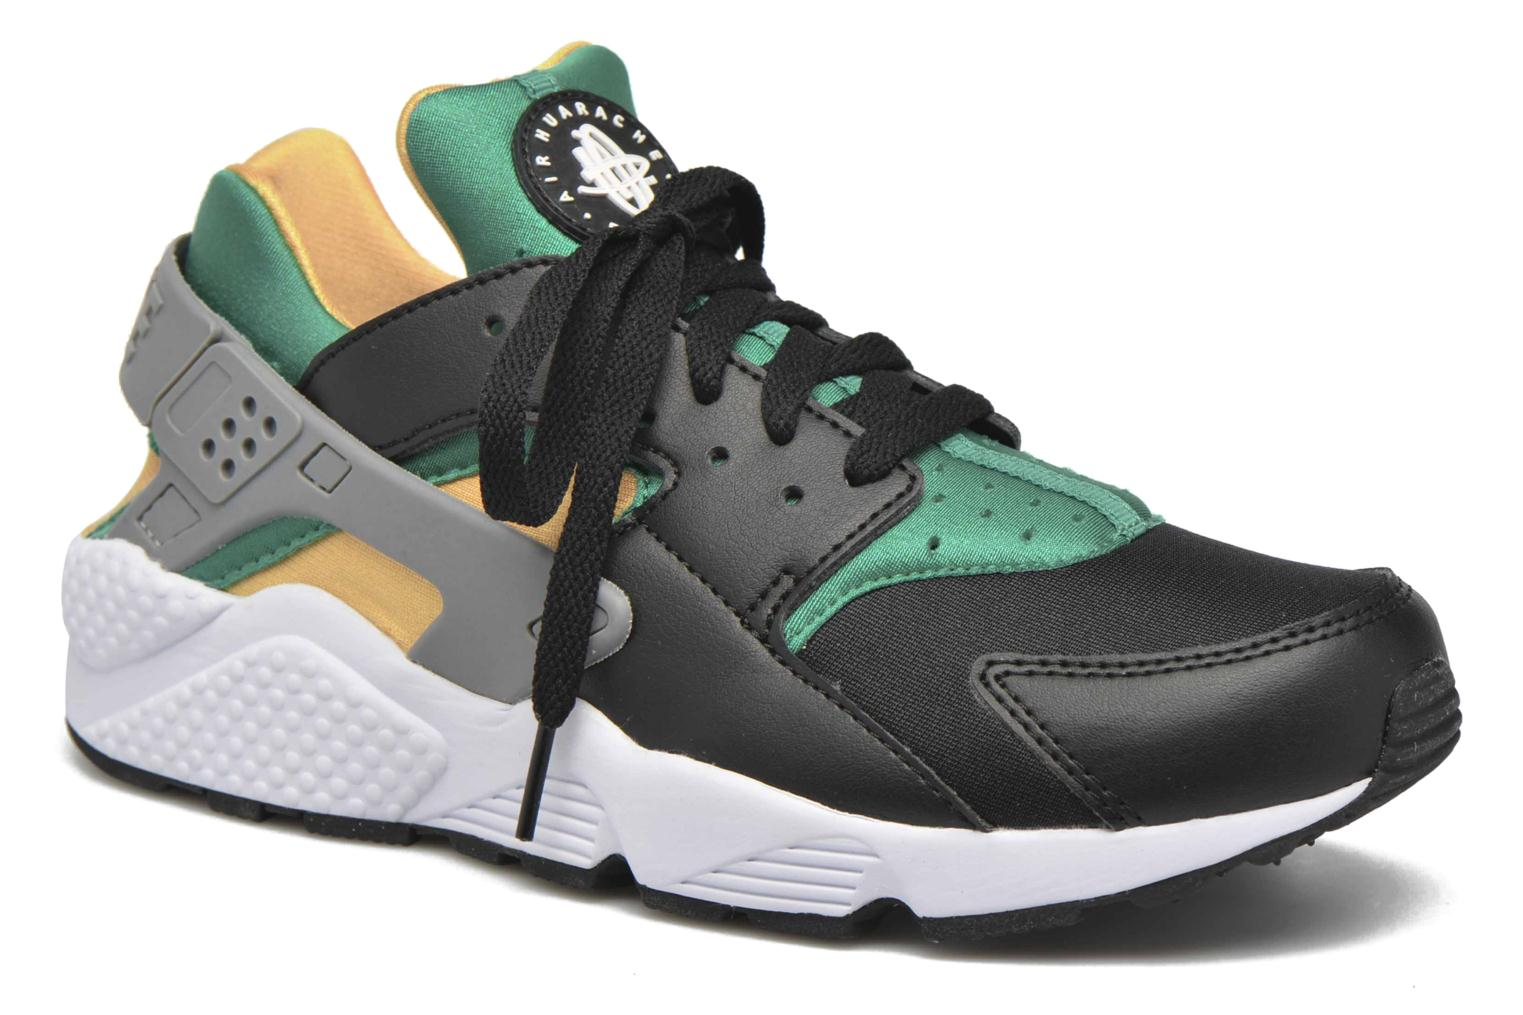 Nike Air Huarache Black/White-Emerald-Resin